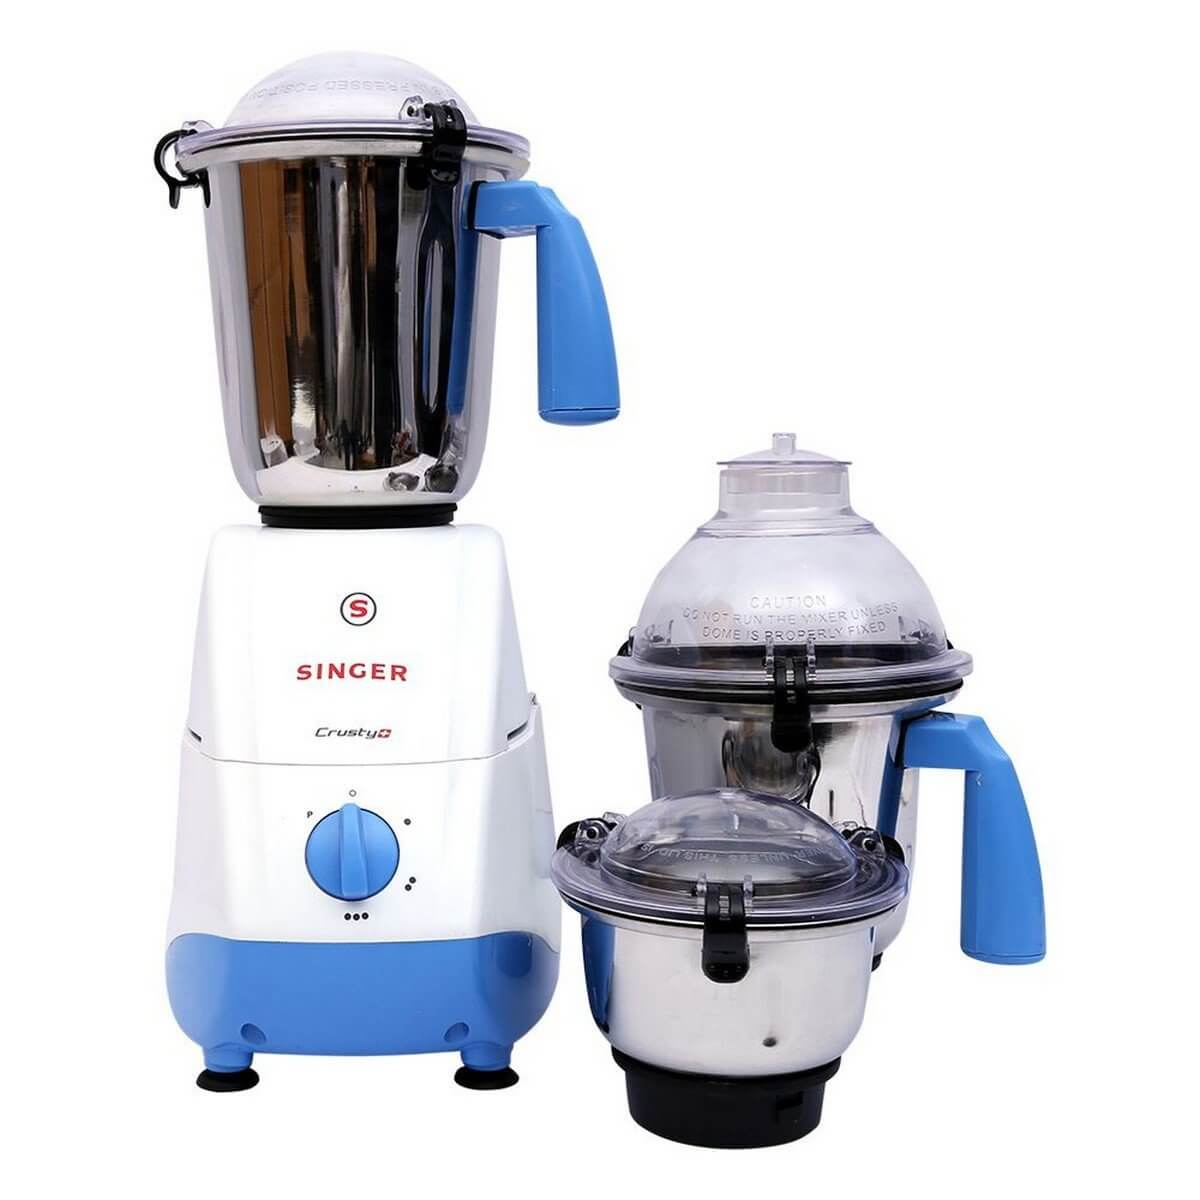 Singer Crusty Plus 600-Watt Mixer Grinder